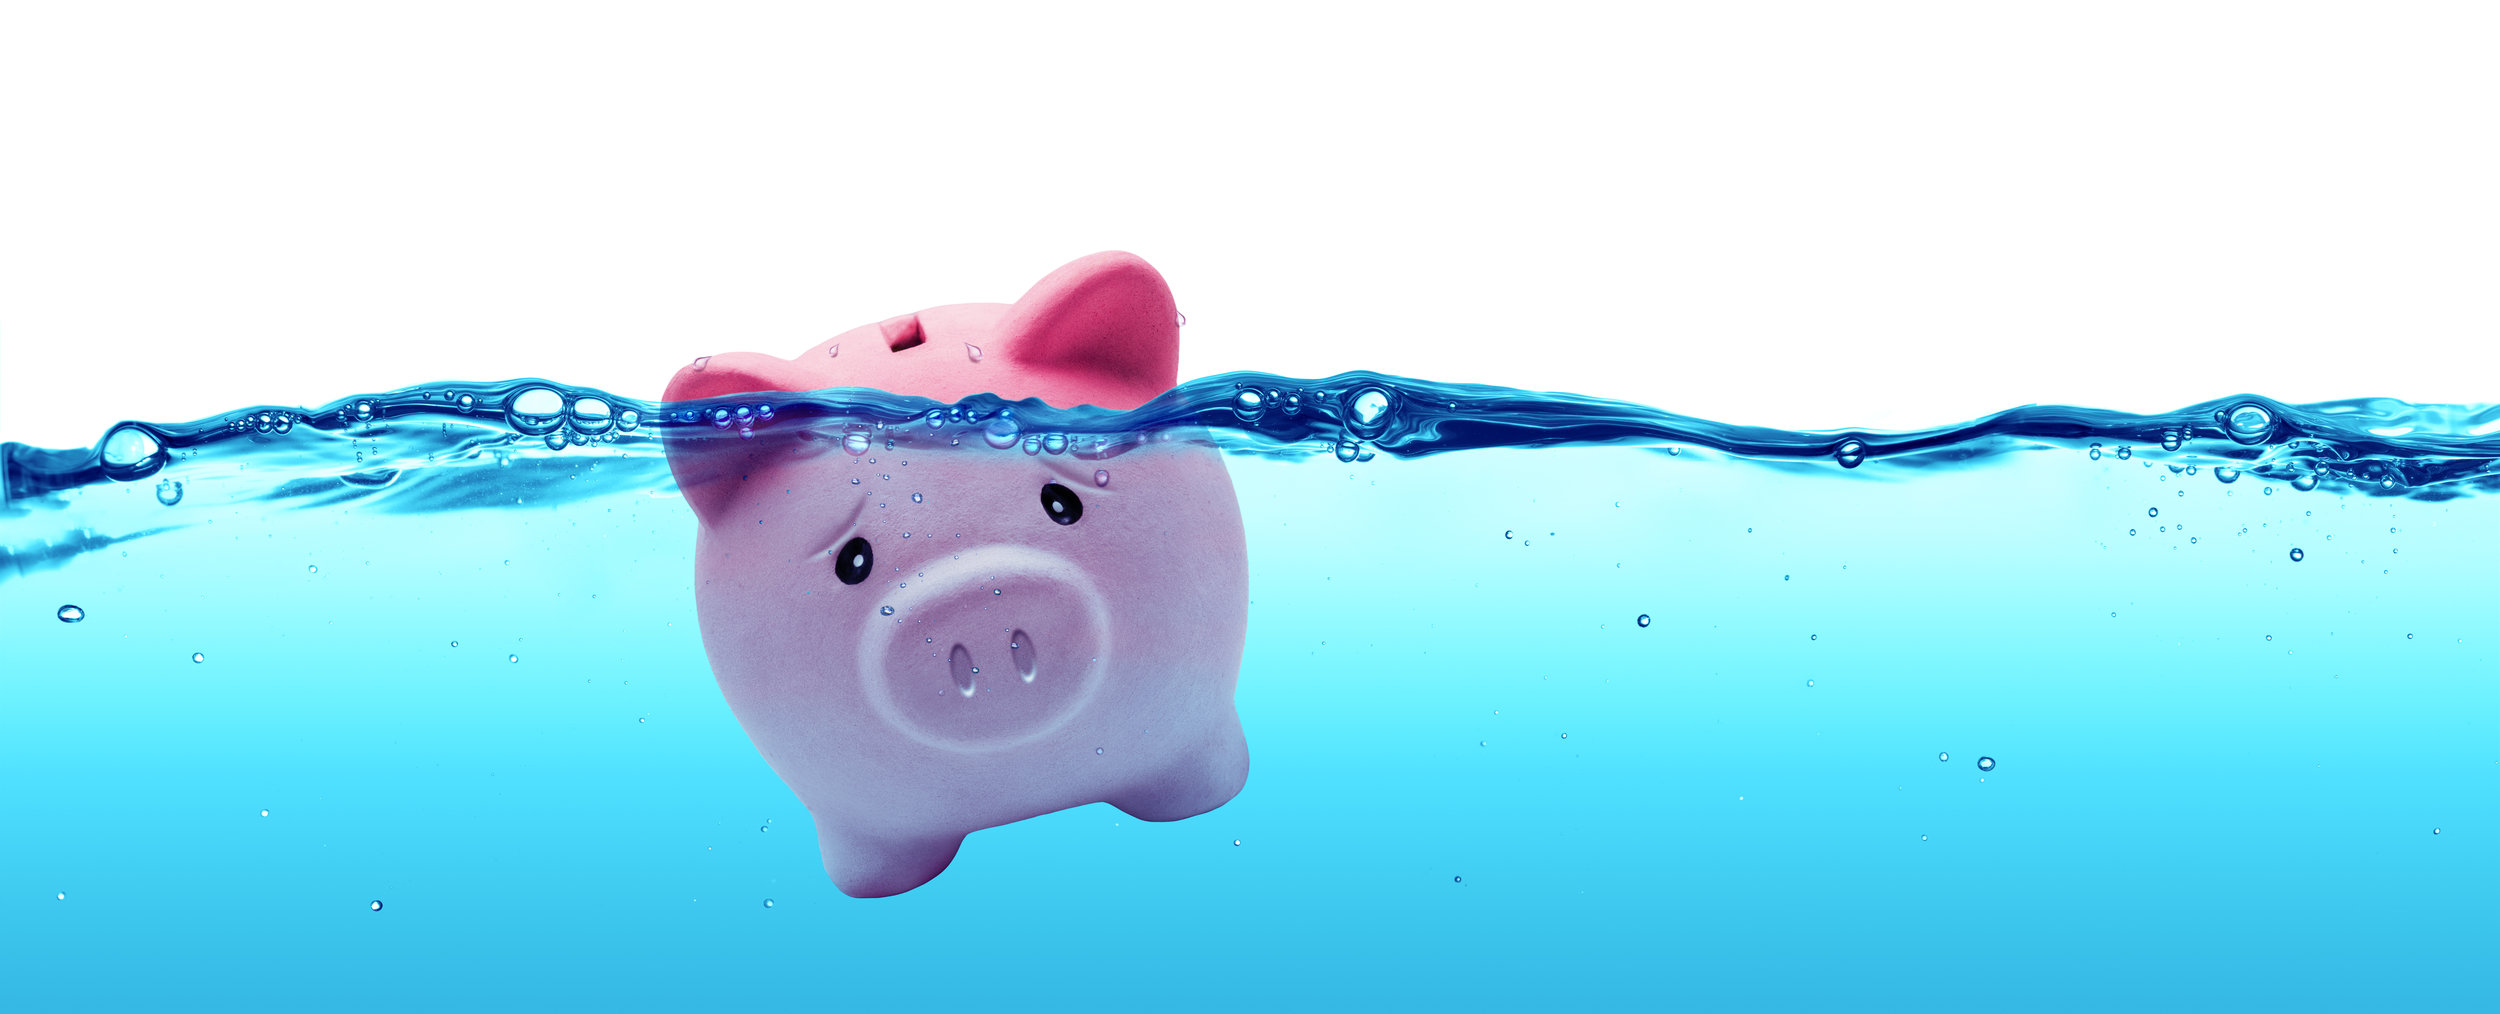 Image: A piggy bank drowning.